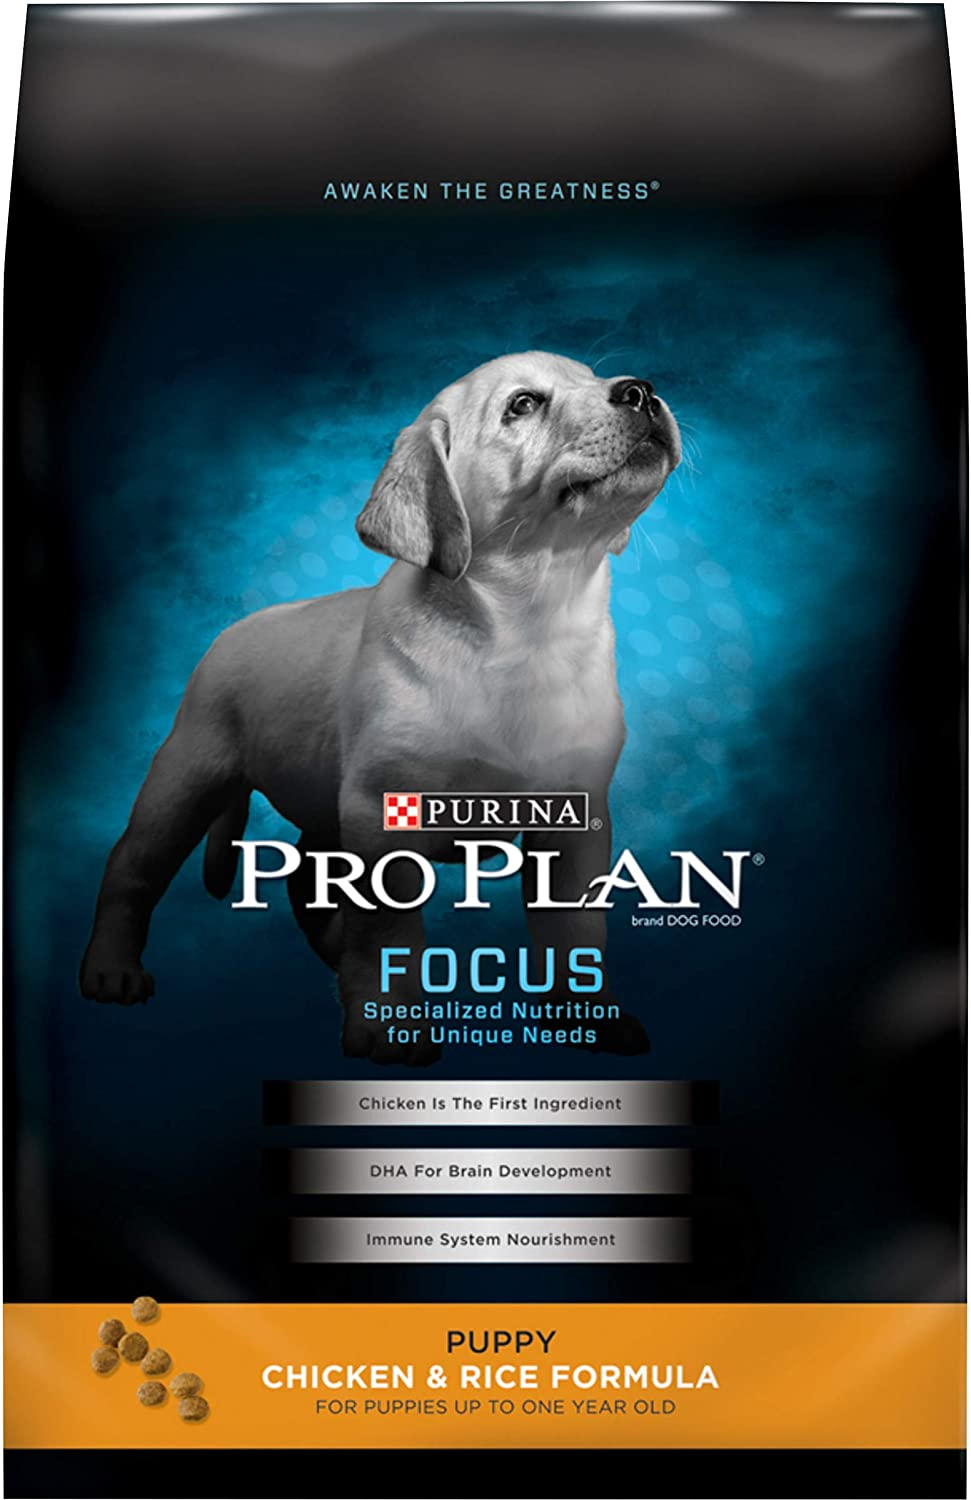 5. Purina Pure Plan Focus